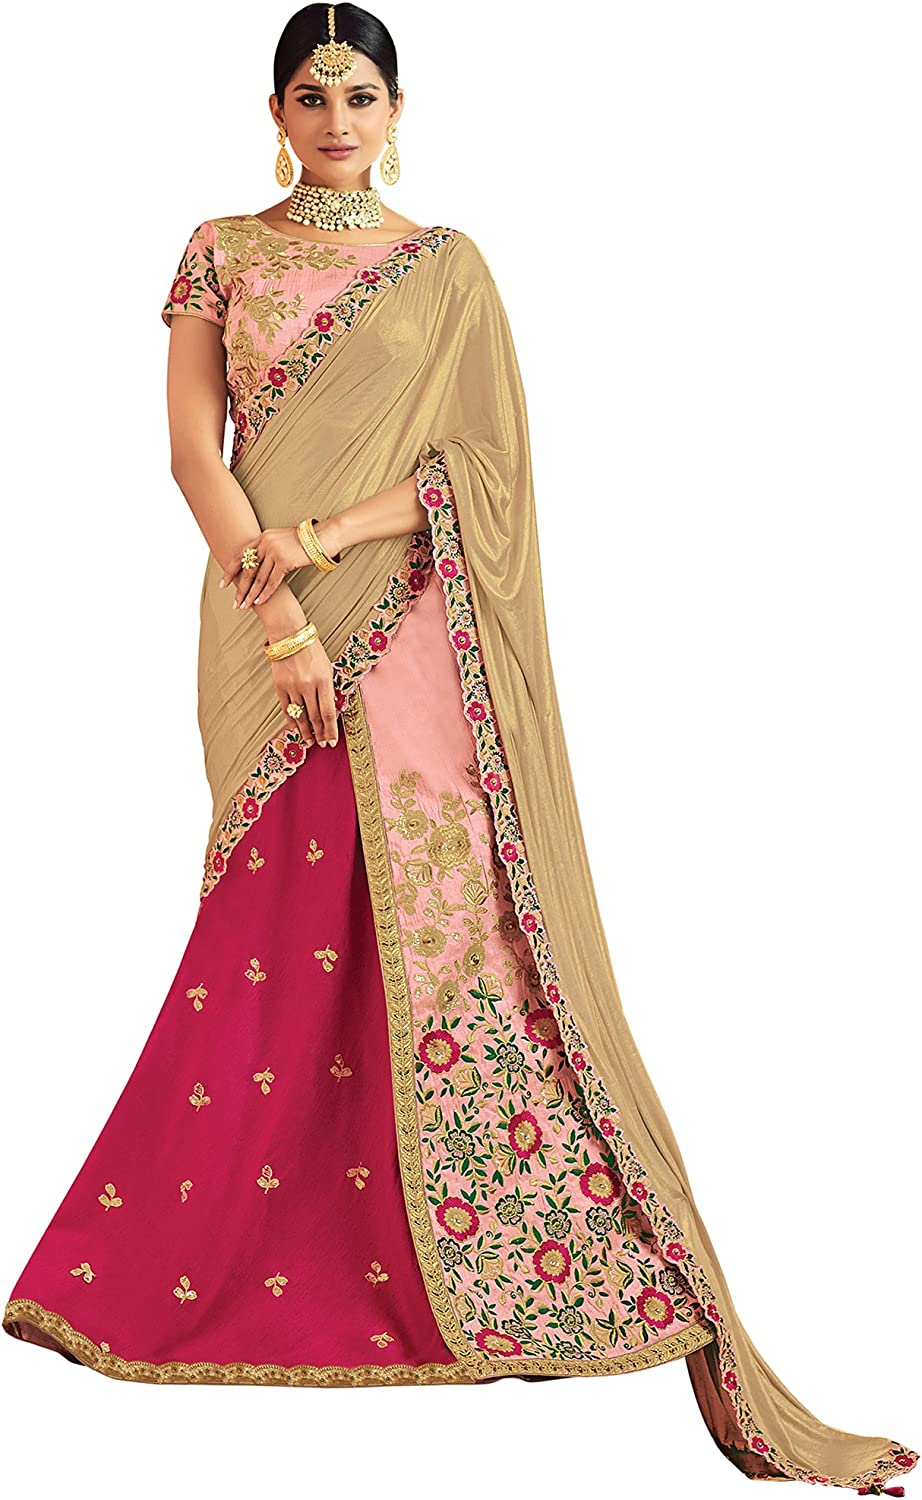 DesiButik's Wedding Wear Elegant Pink Raw Silk Lehenga Choli with Dupatta